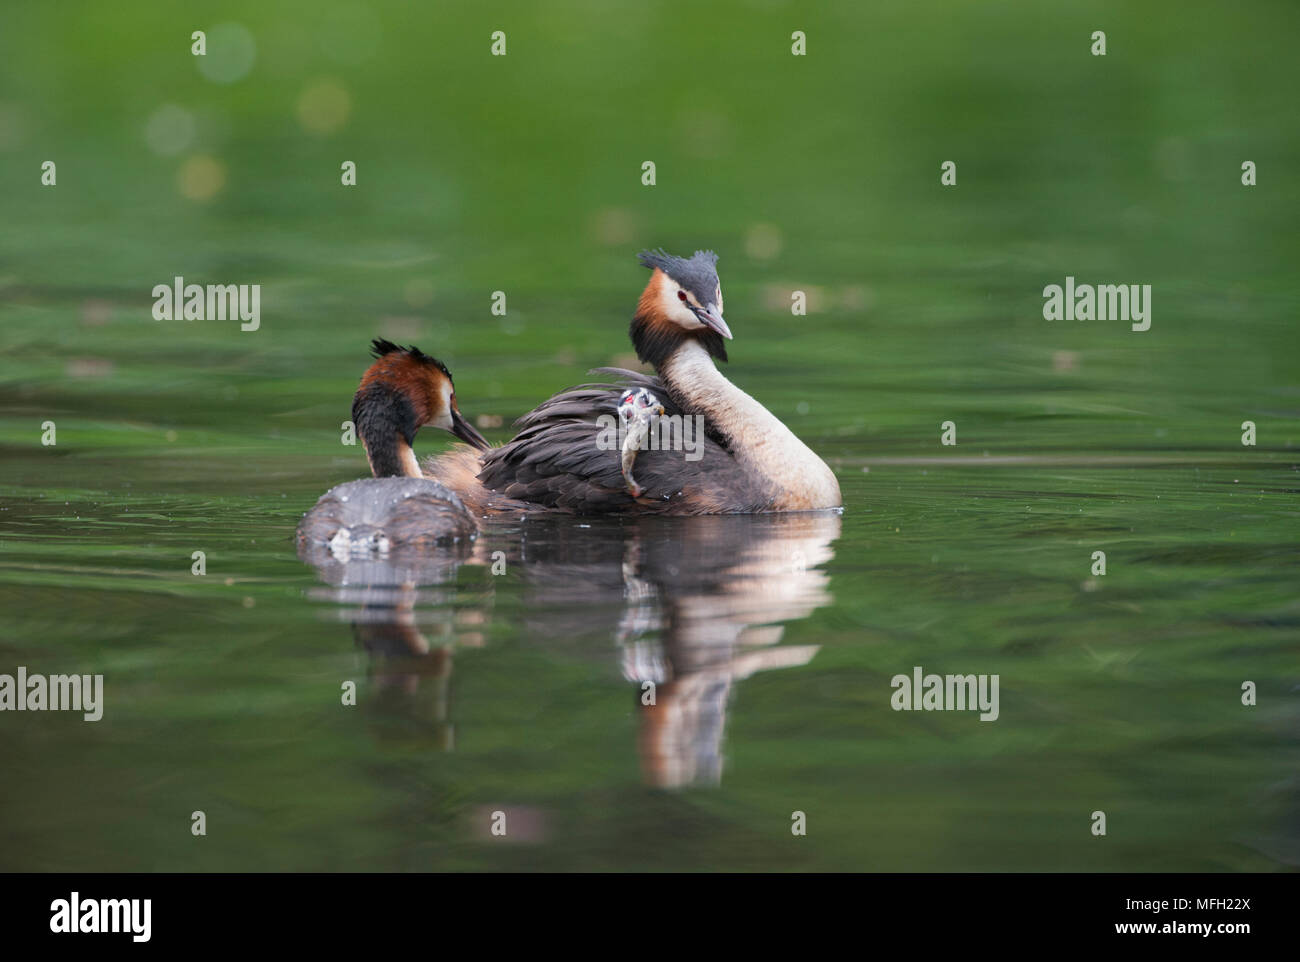 Pair of Great Crested Grebe, (Podiceps cristatus), parent bird carrying a single chick on its back, Regents Park, London, Briitish Isles, UK - Stock Image